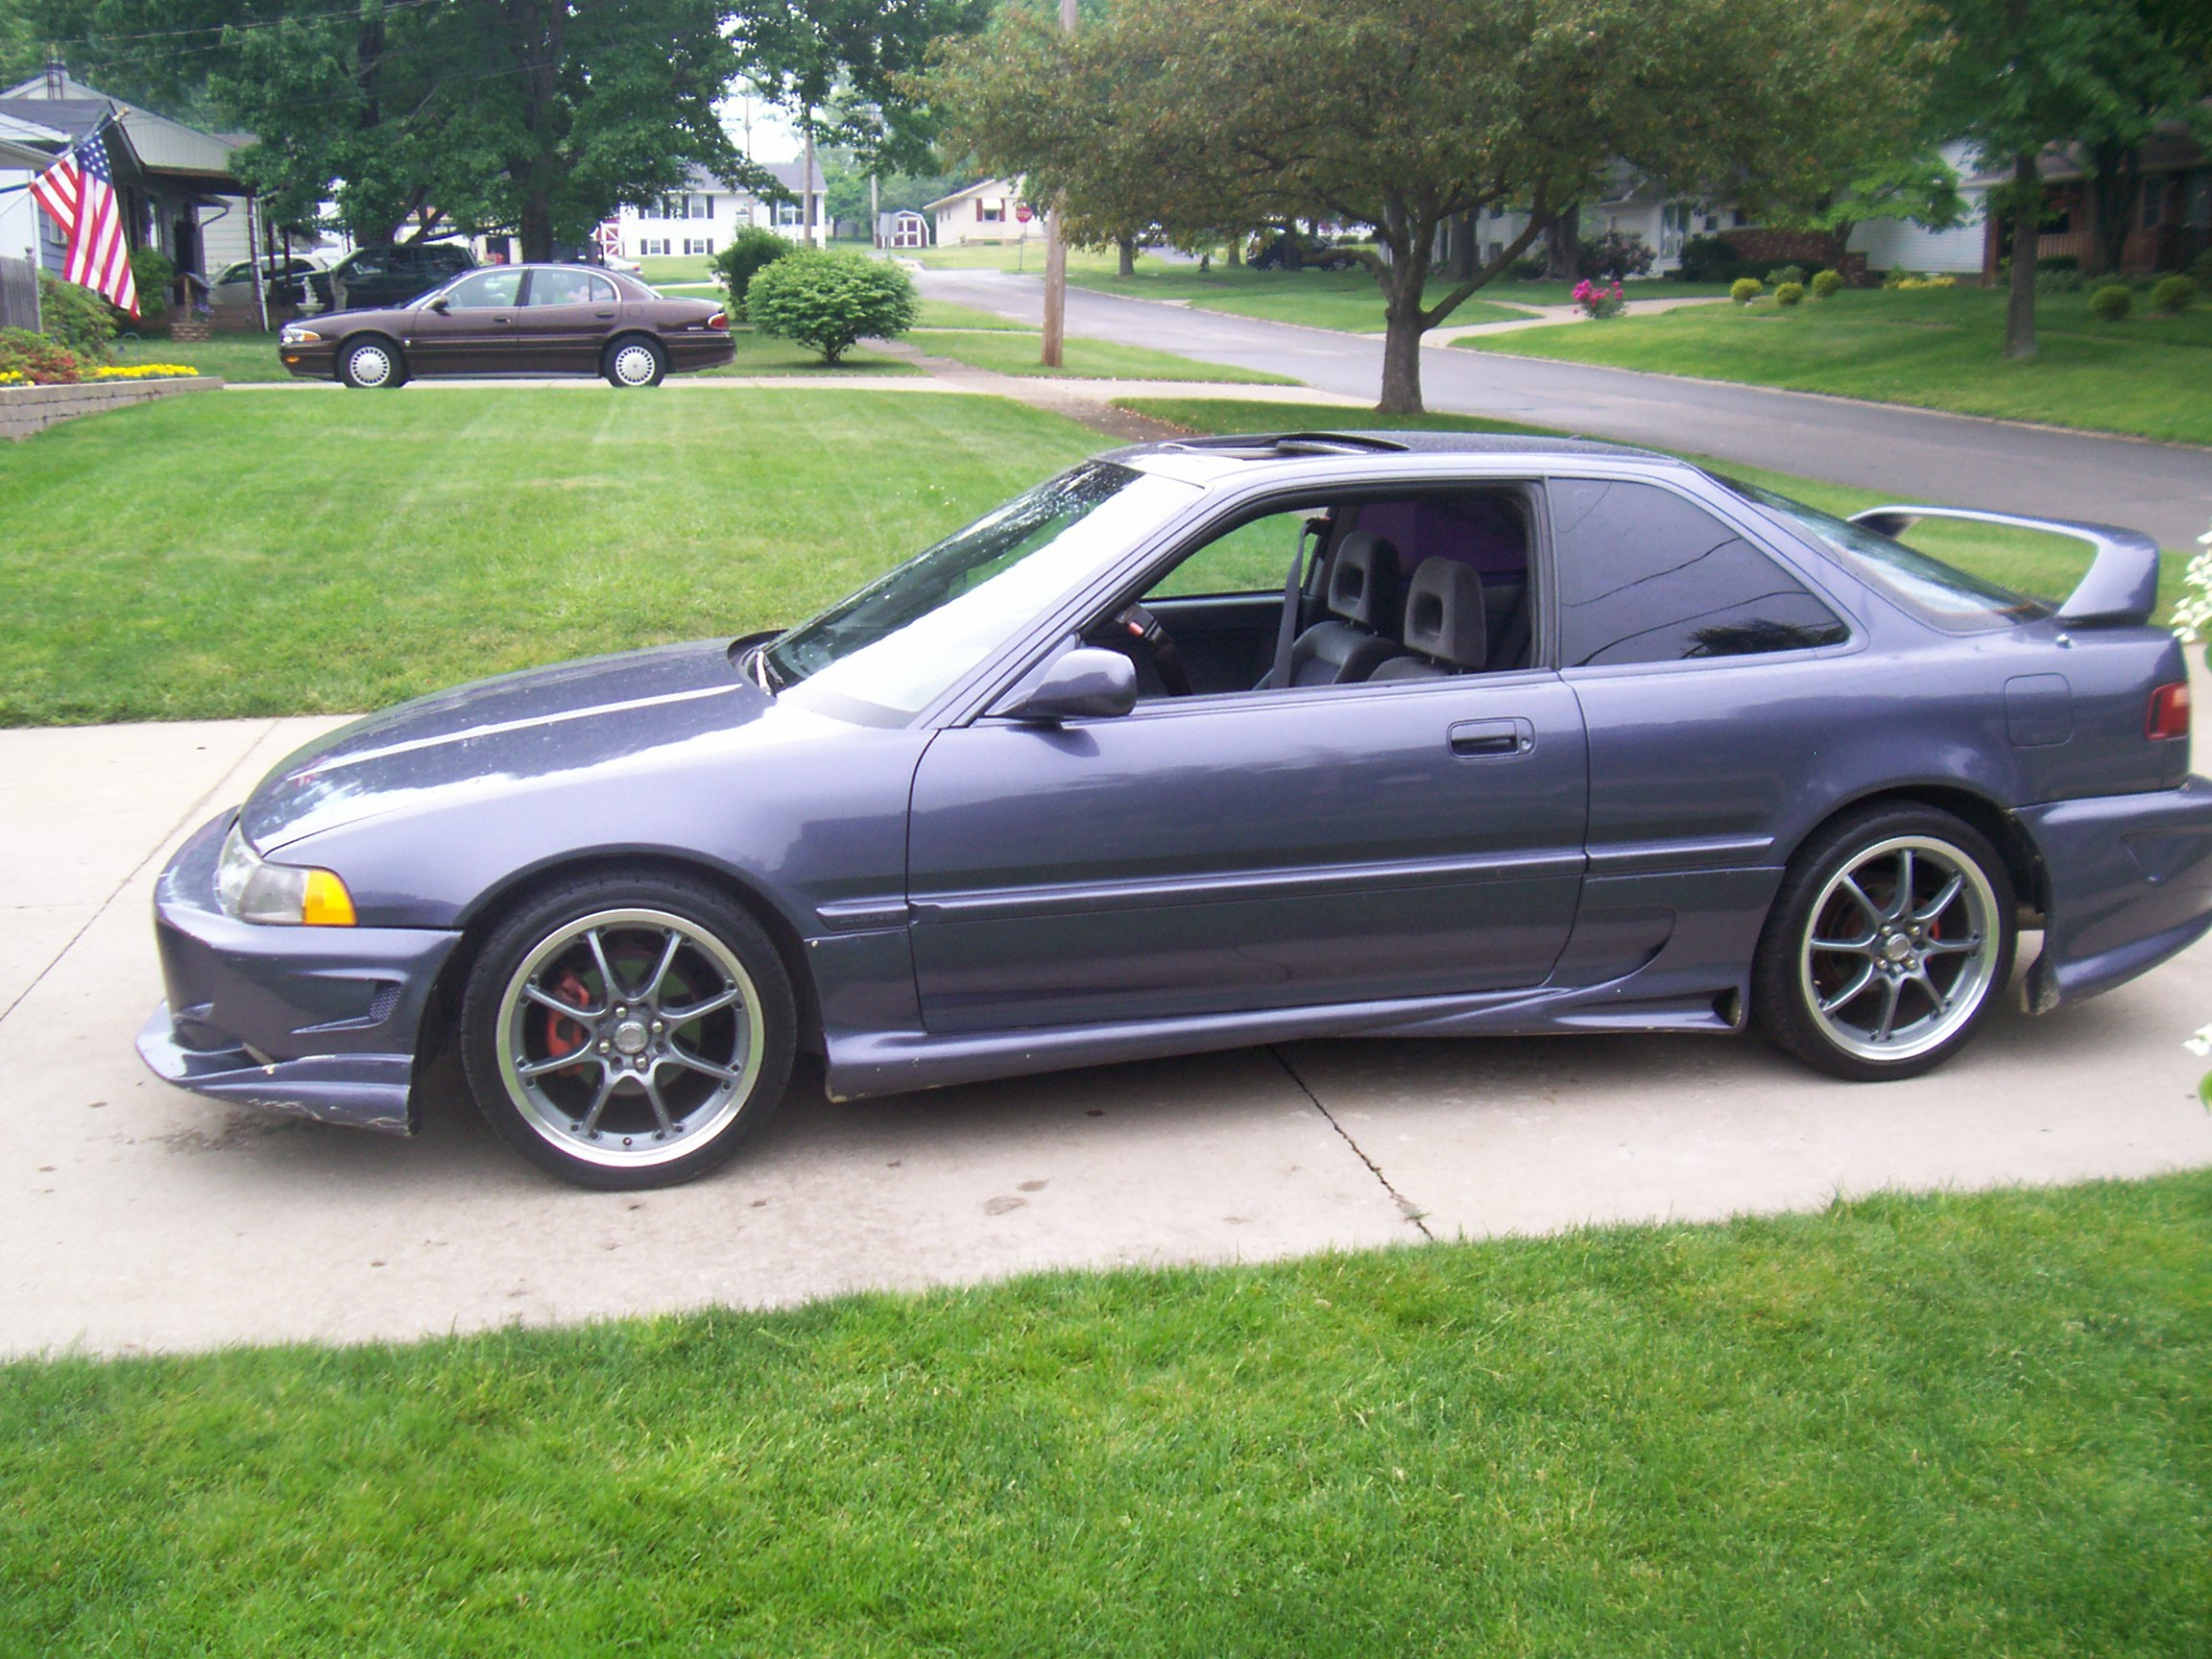 Riced Out Integra - Viewing Gallery